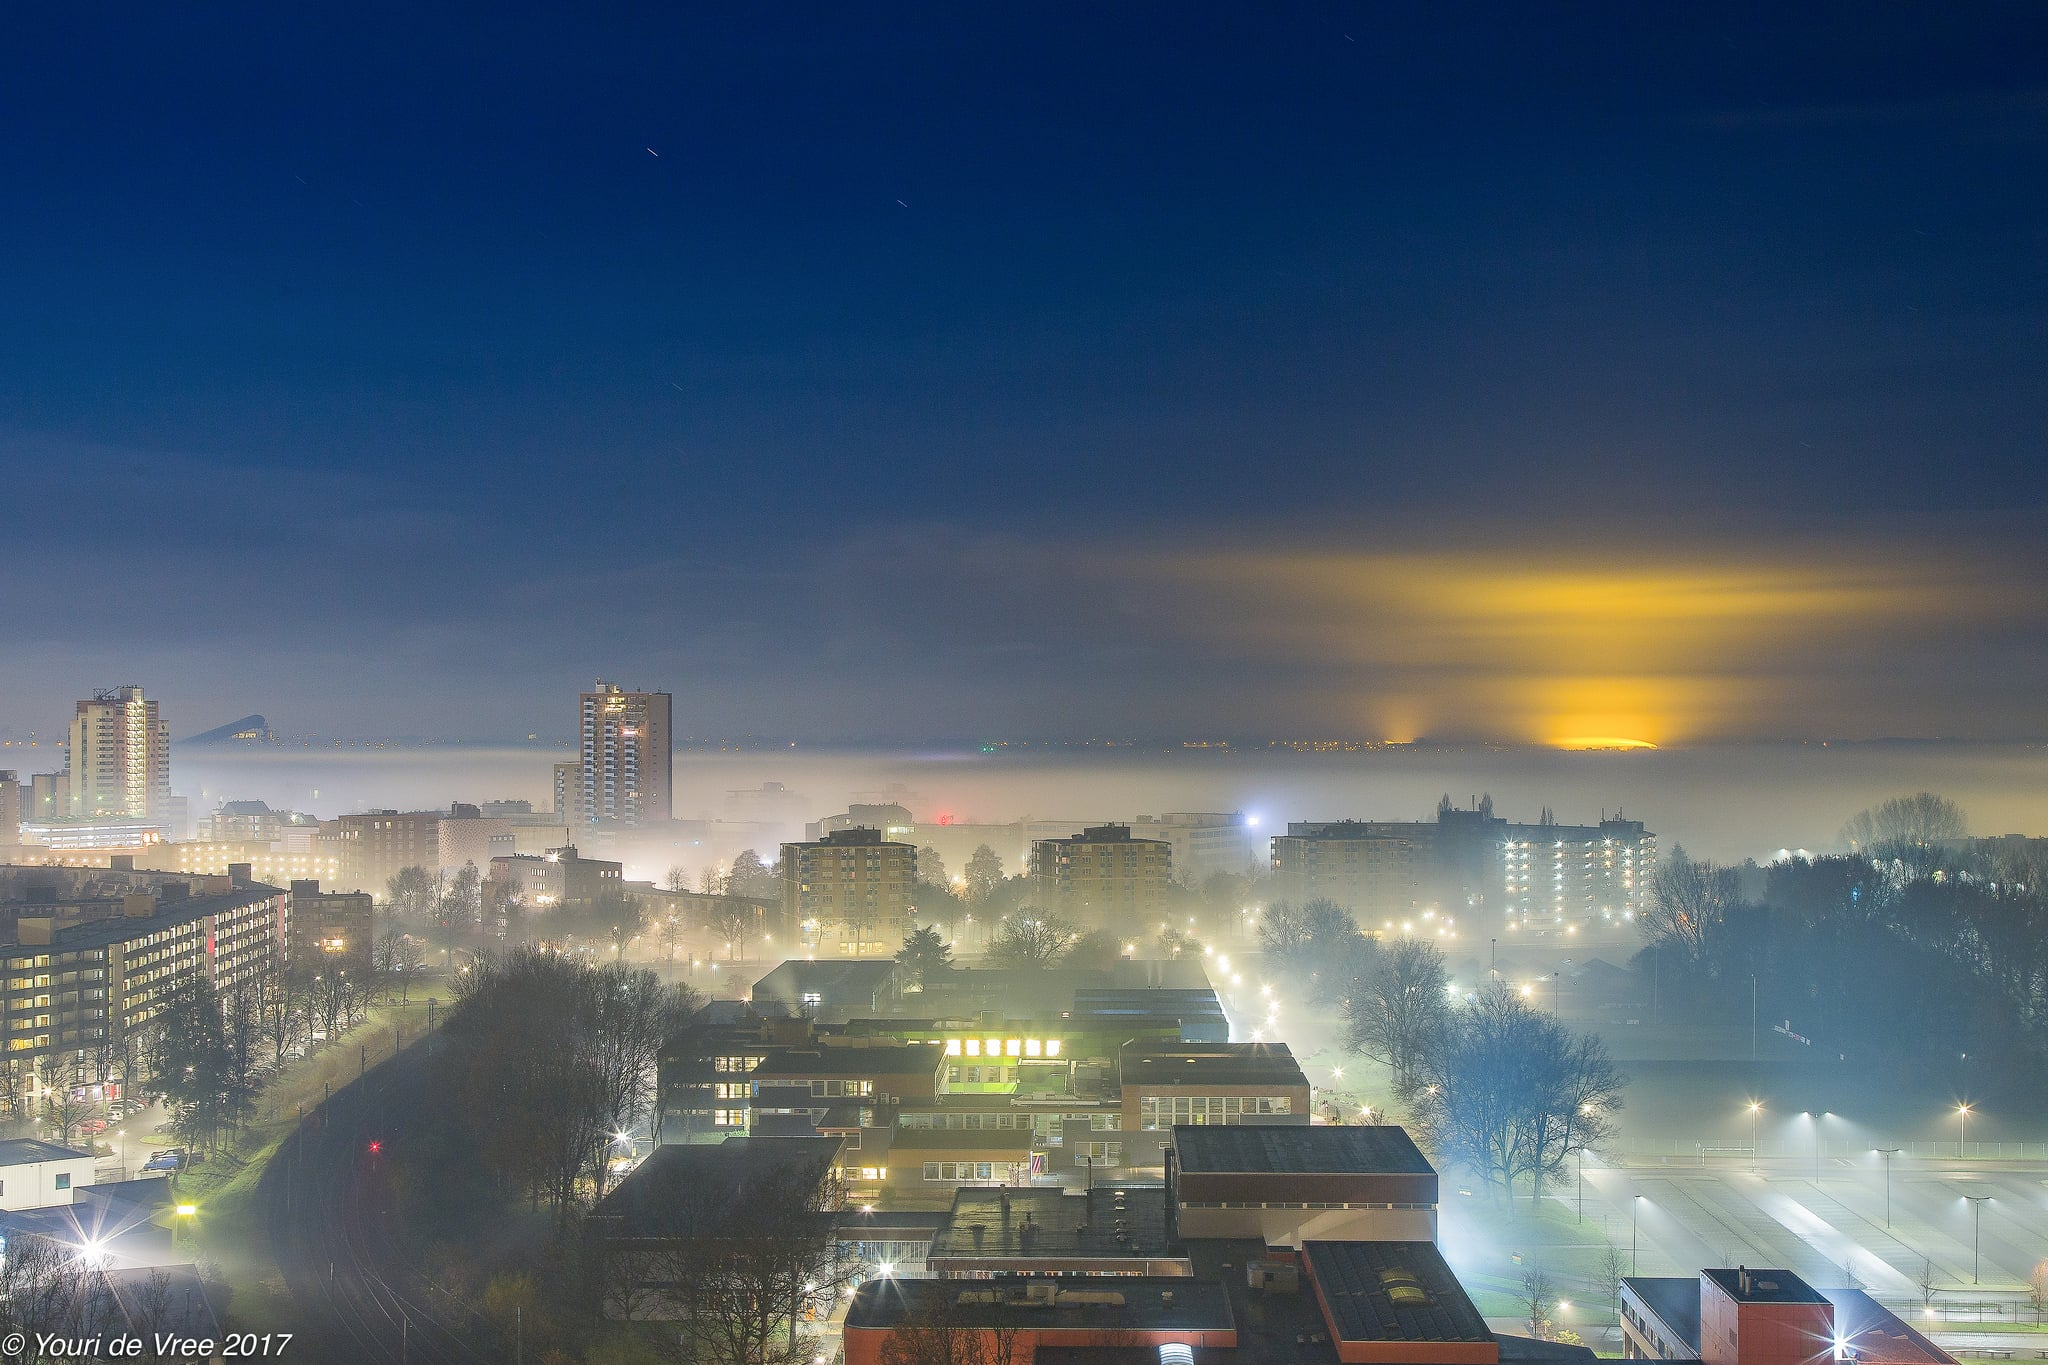 6+ landscapes in the fog: Ducks, Scotland, Night city, two